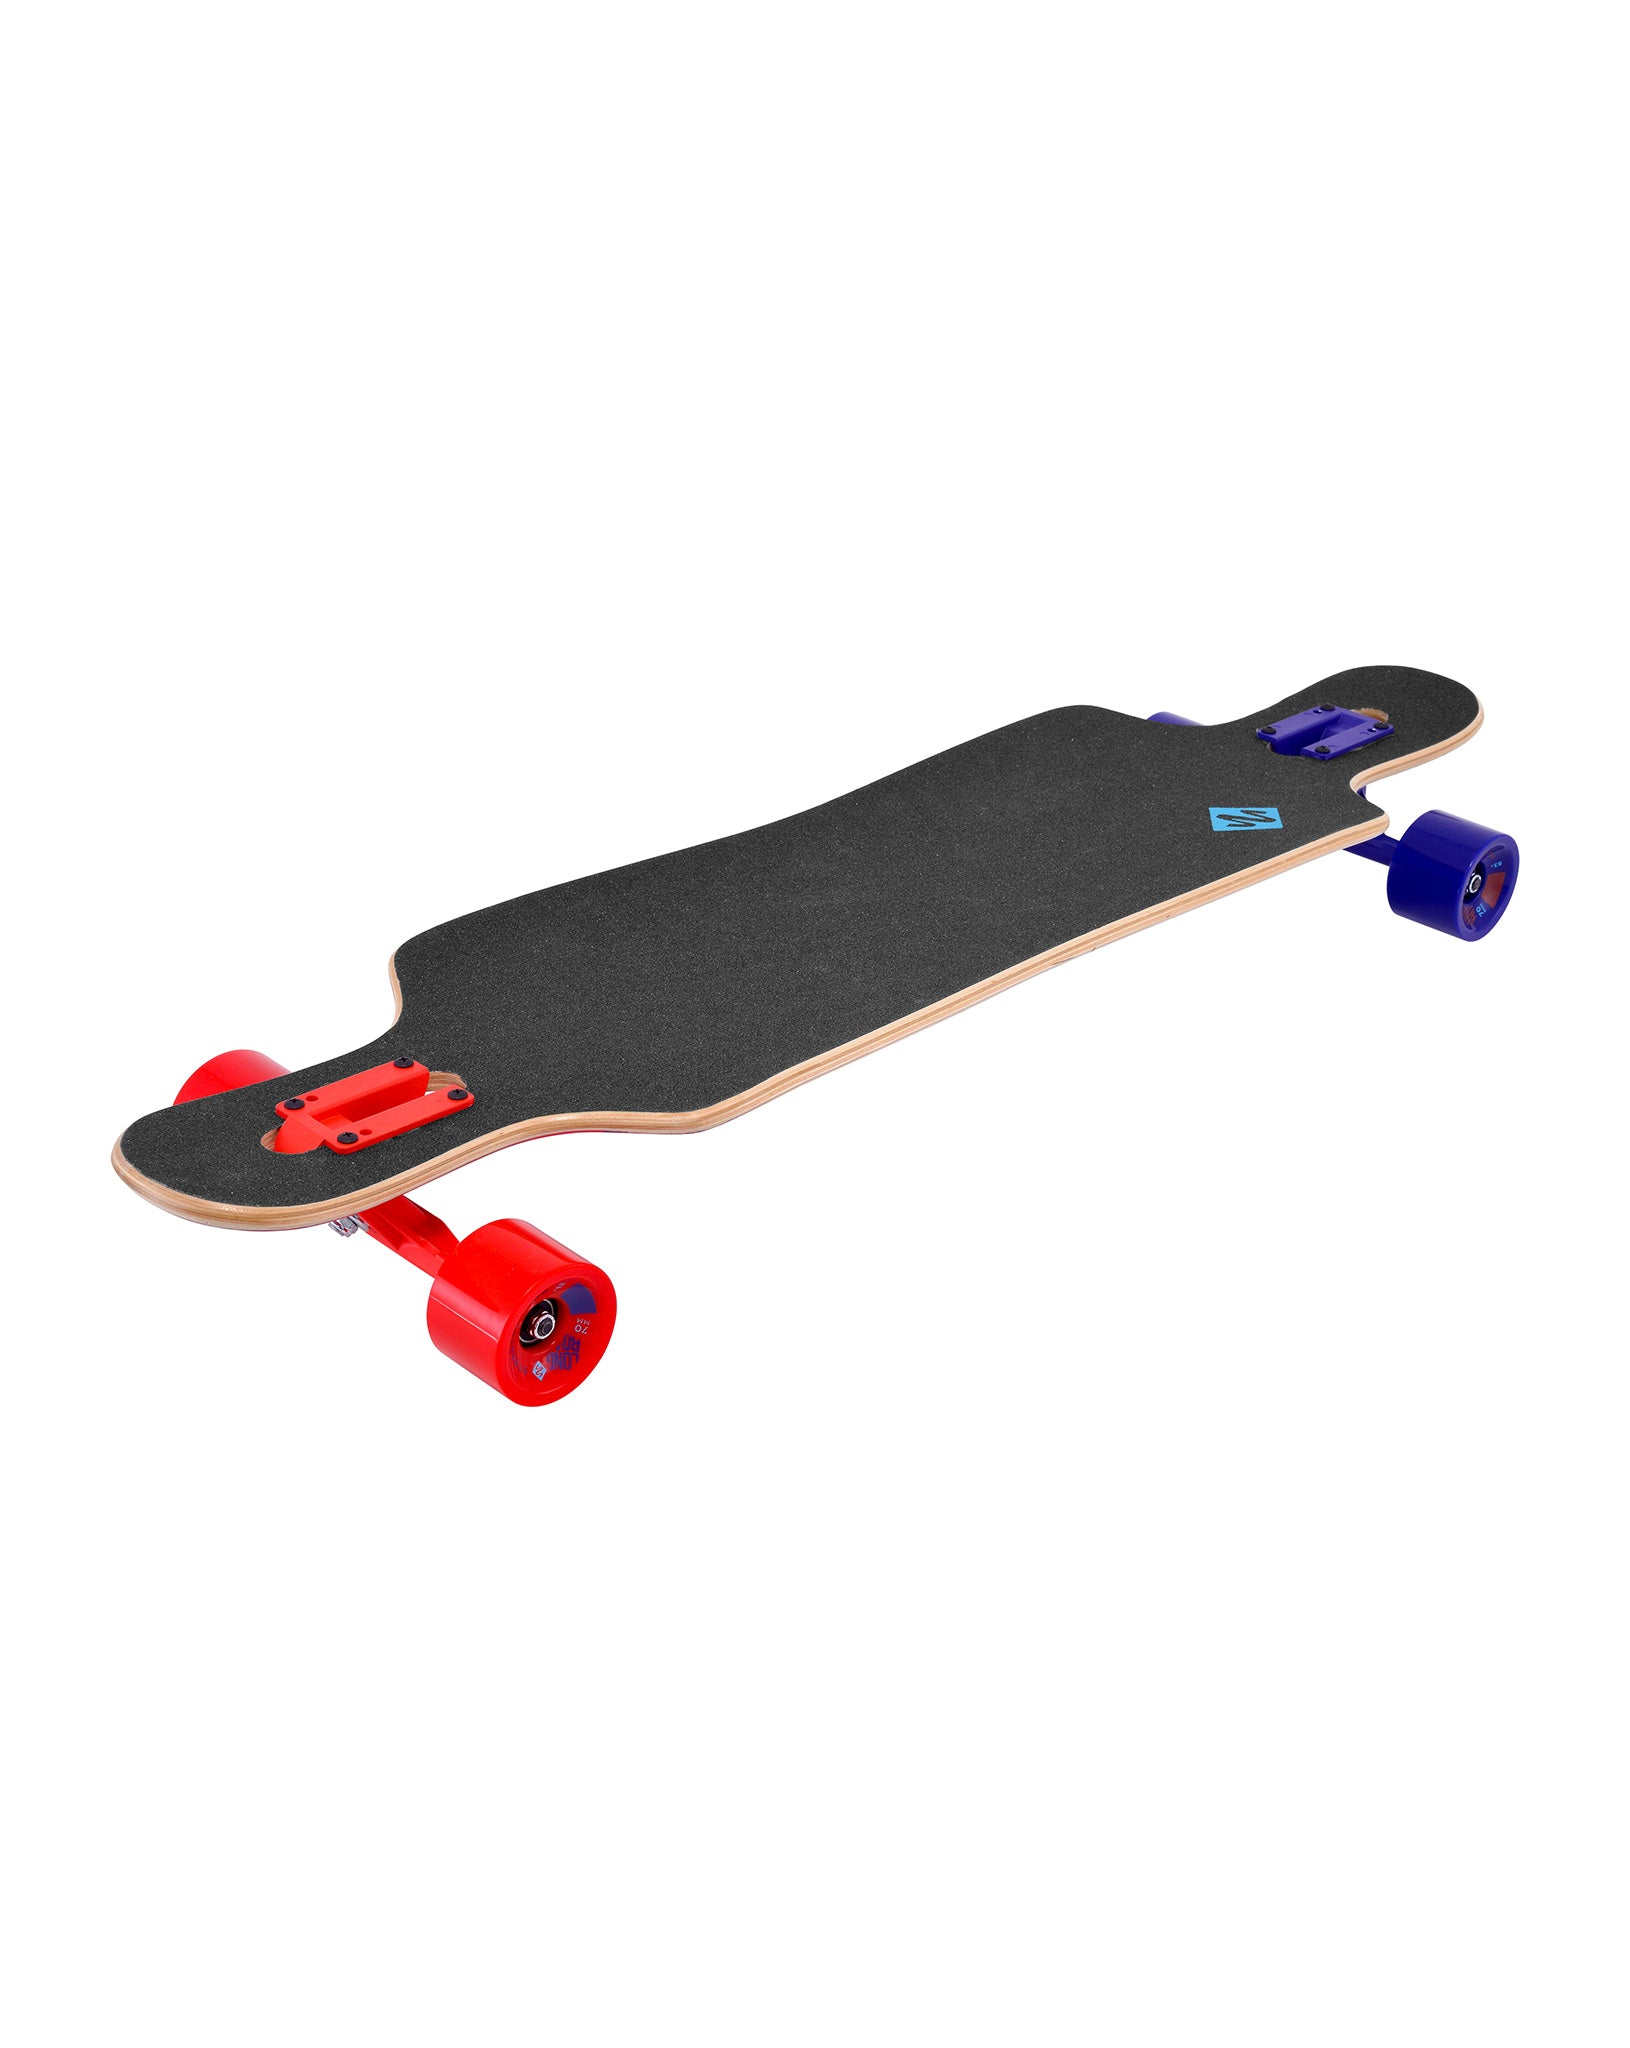 "Curve Drop Through Freeride 39"" Higher Faster"